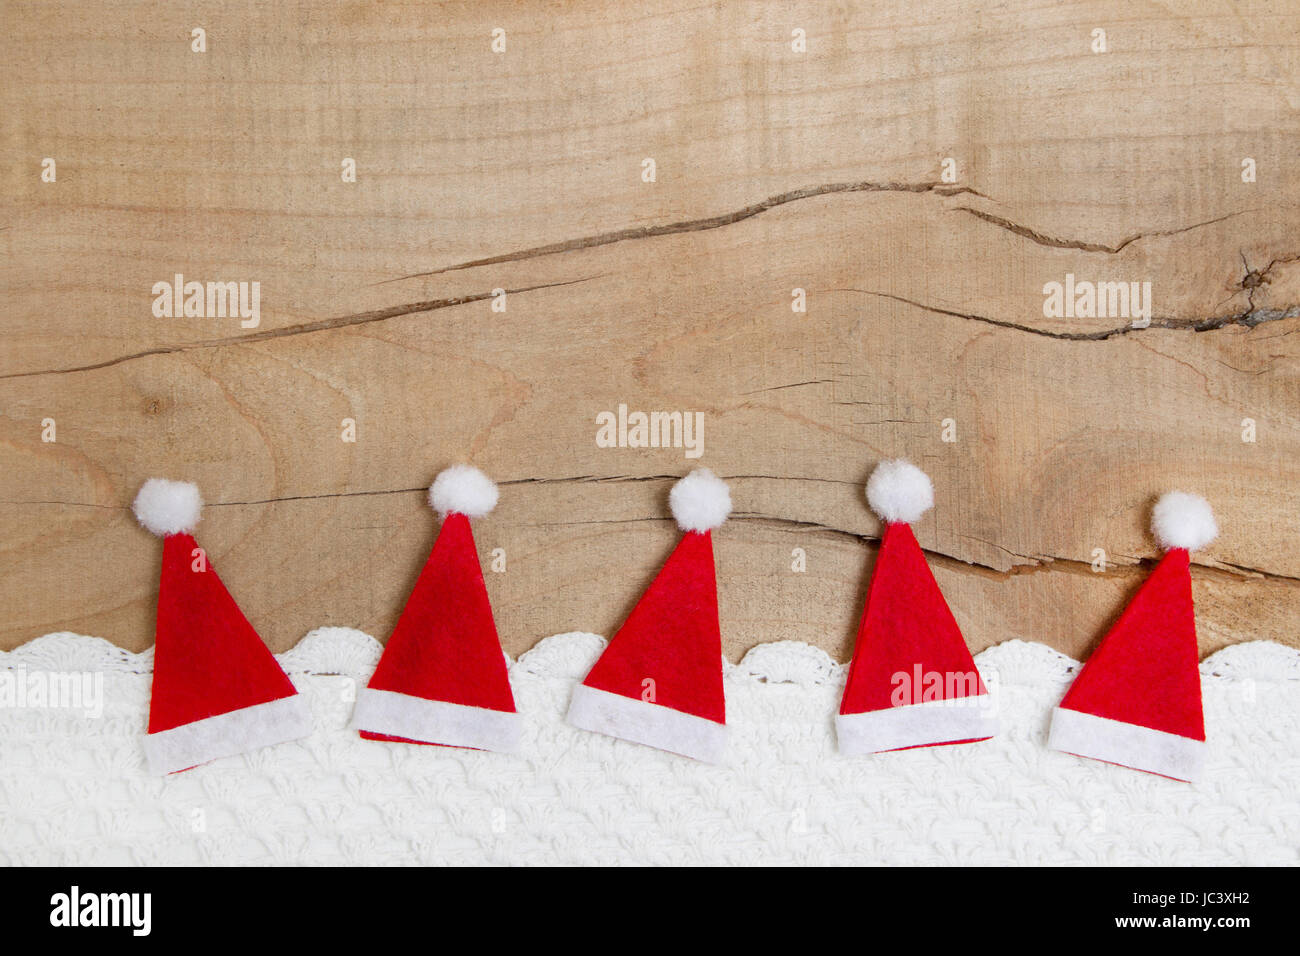 Greeting card idea stock photos greeting card idea stock images red christmas hats on wooden background for a greeting card idea for natural decoration m4hsunfo